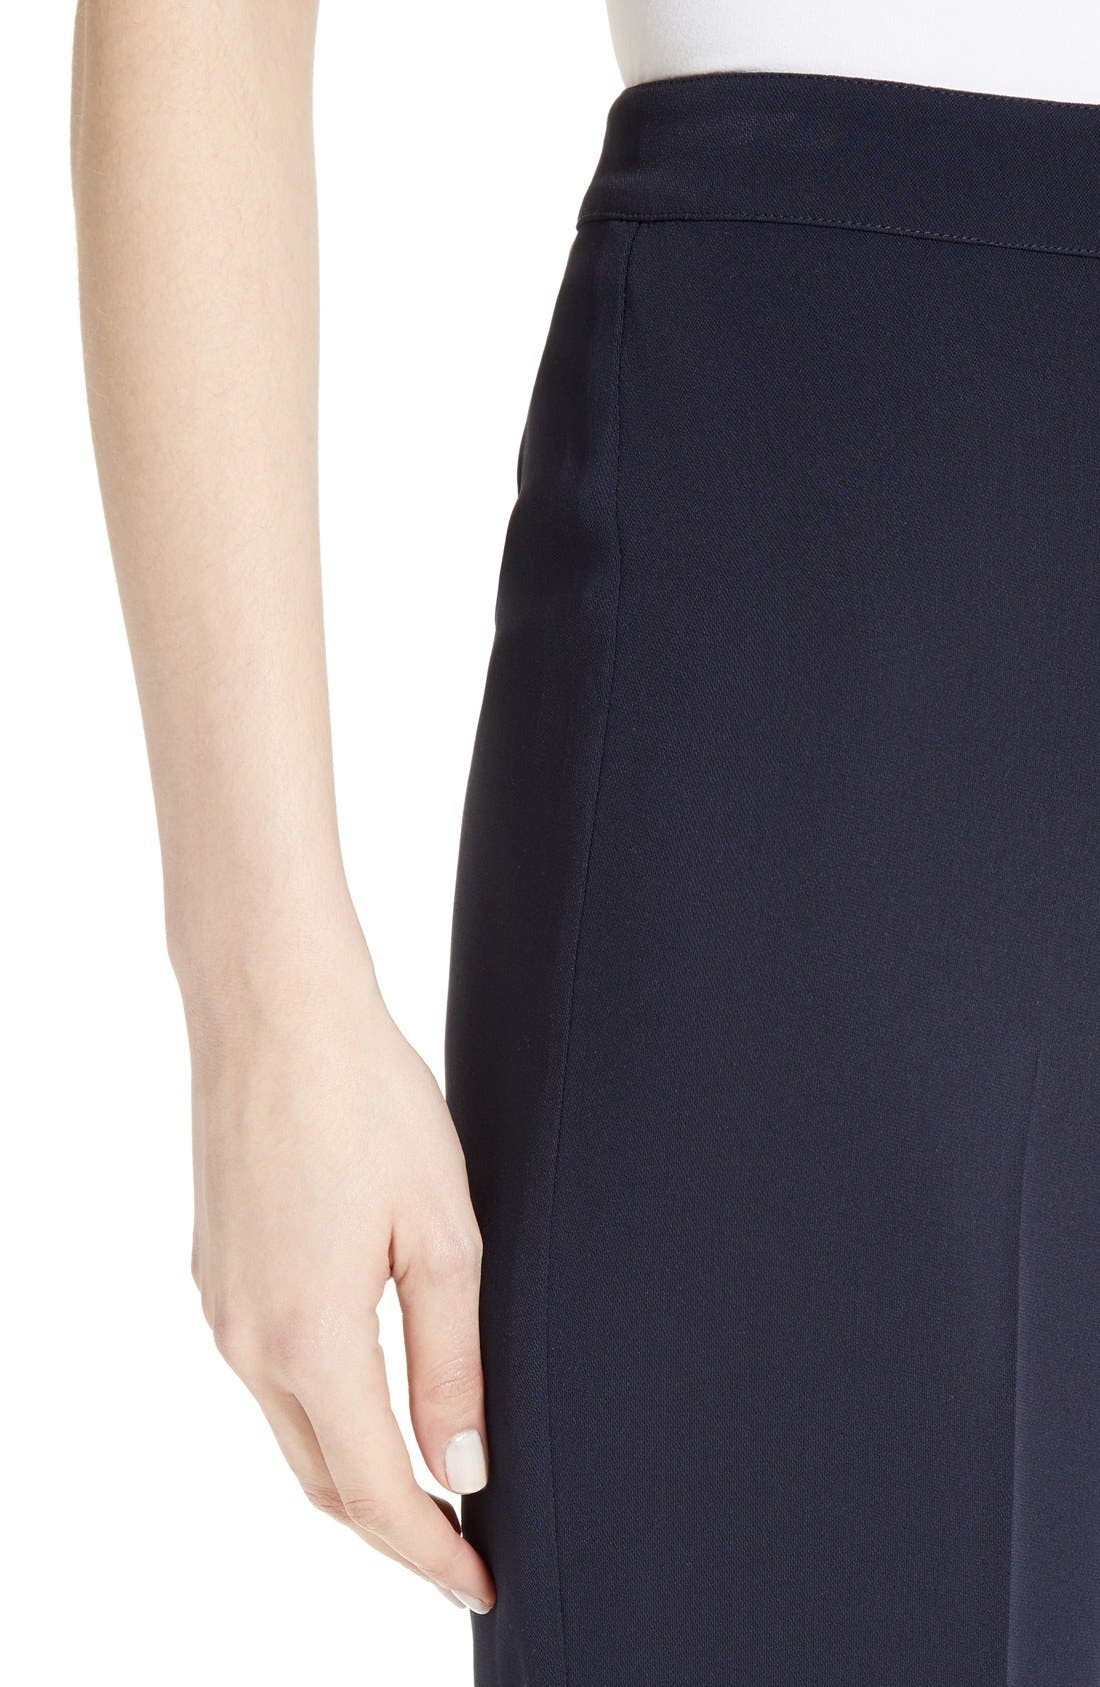 Diana Classic Cady Stretch Pants,                             Alternate thumbnail 9, color,                             NAVY